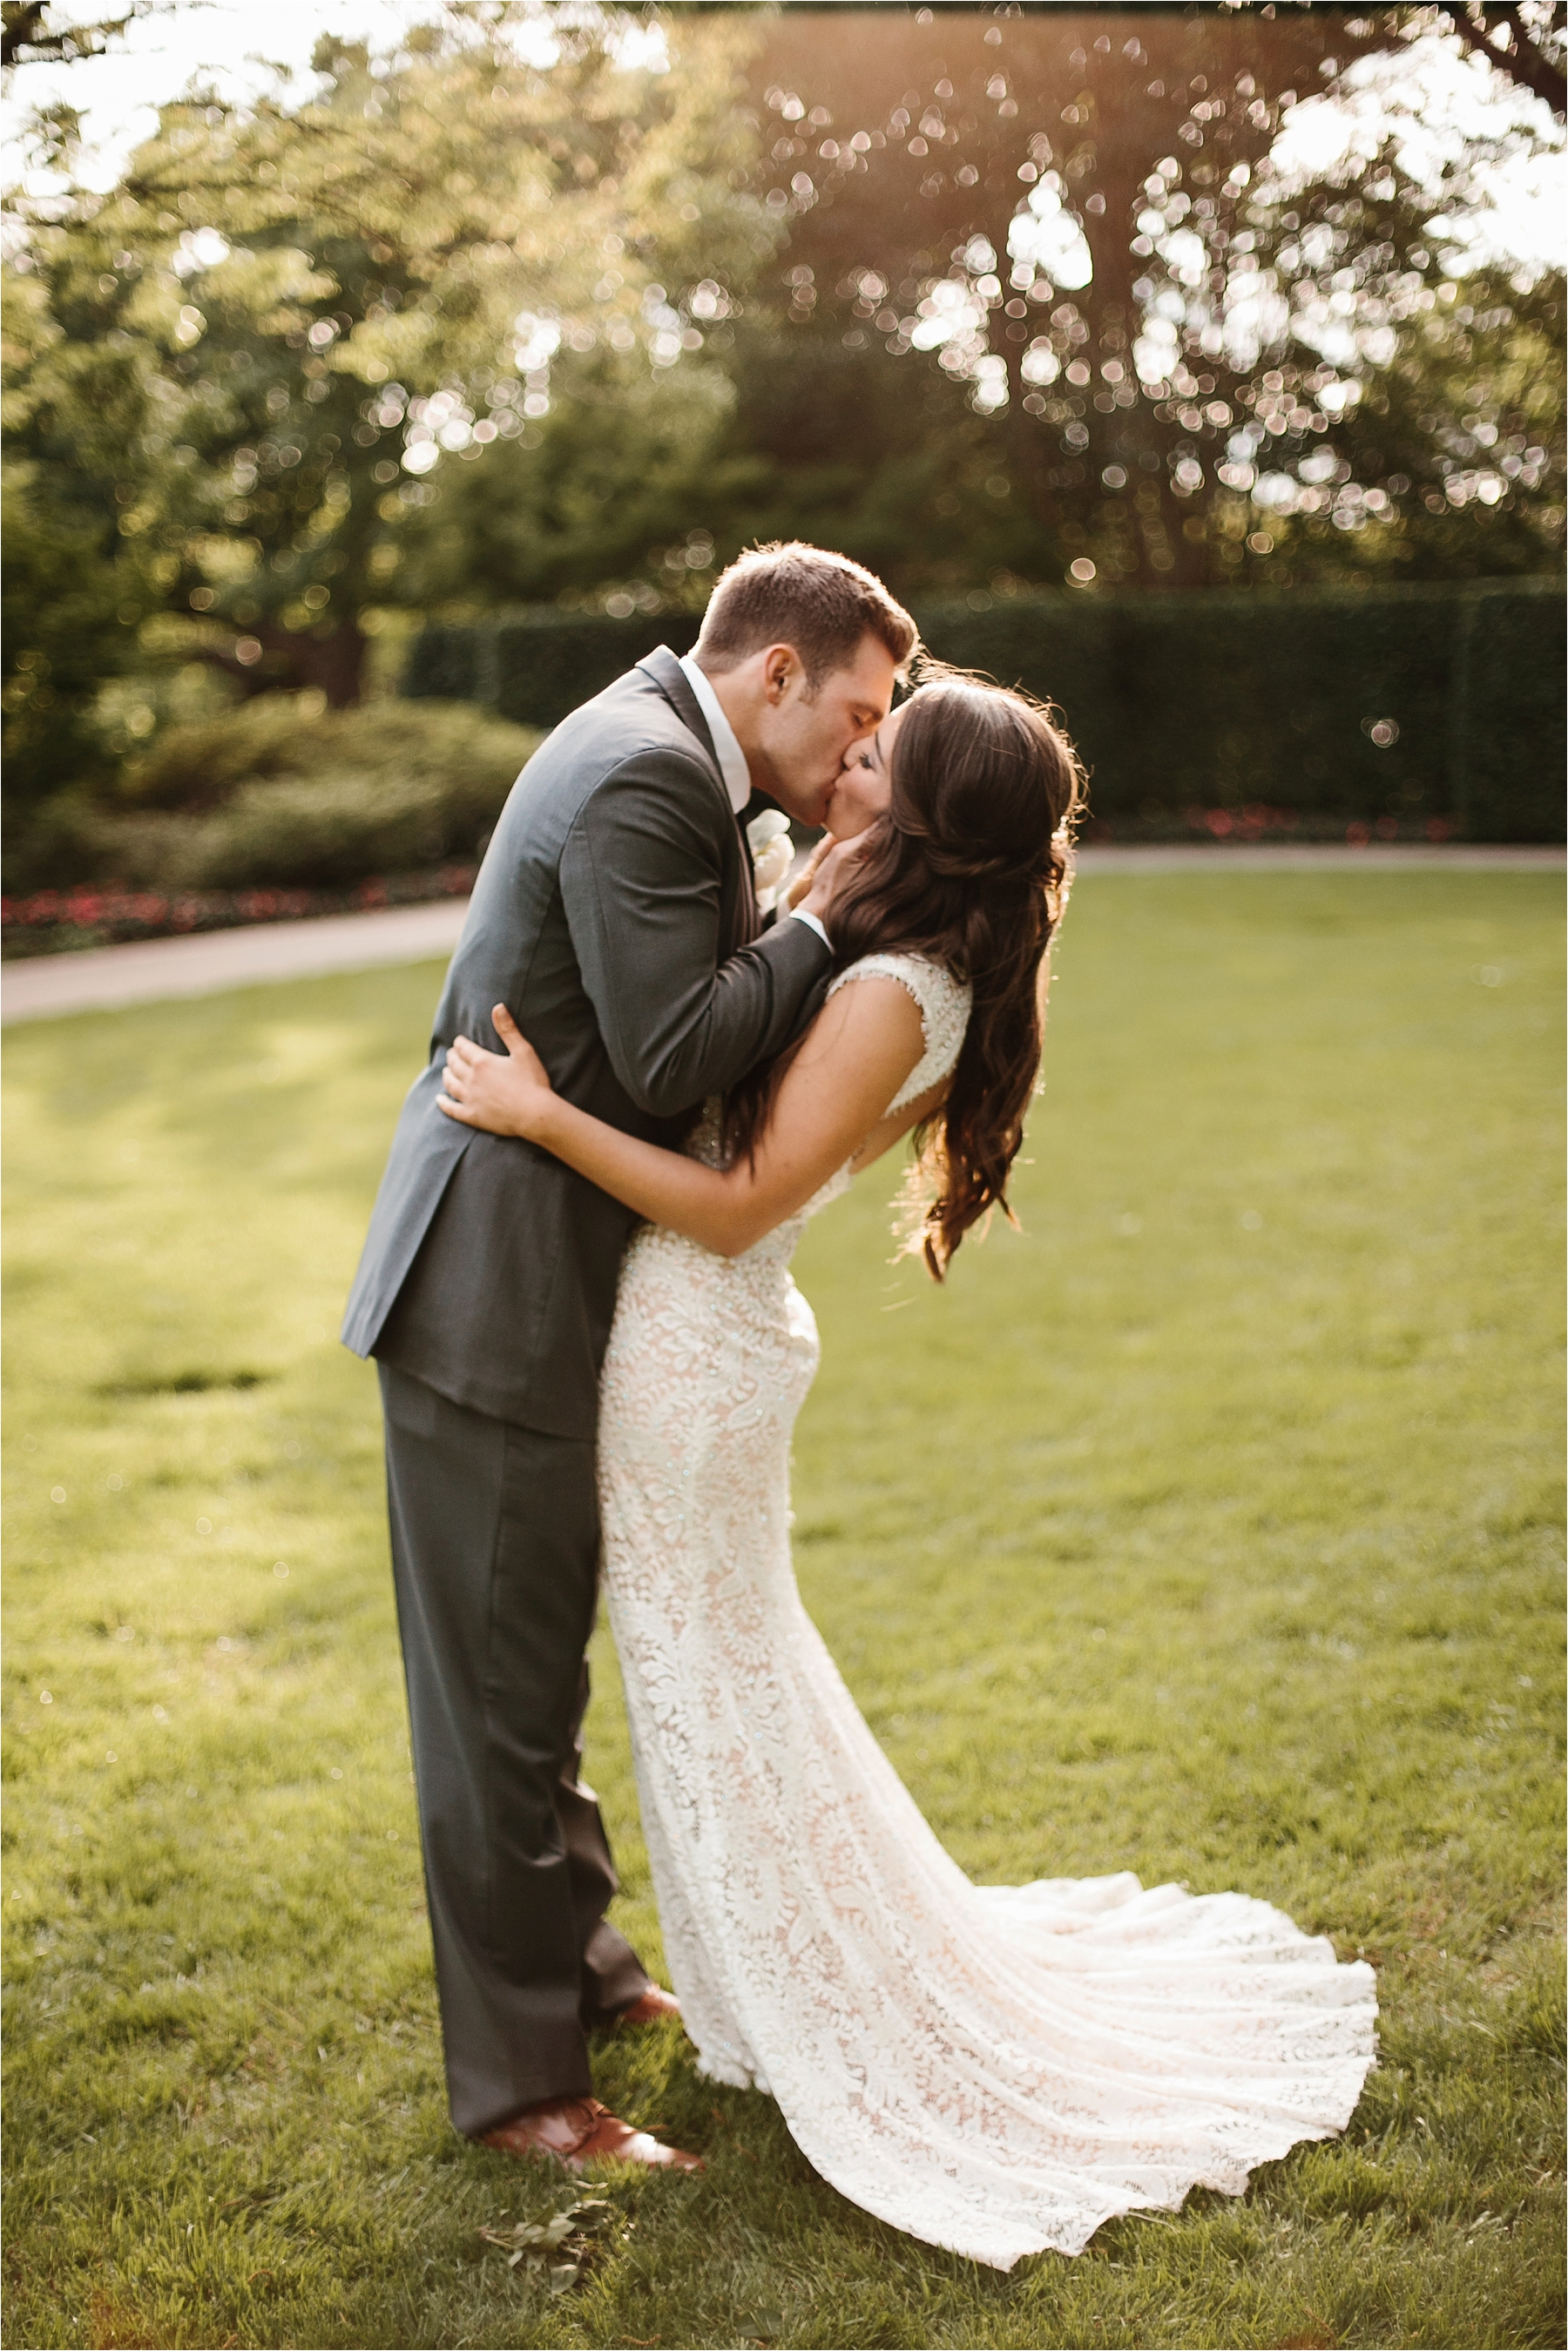 Devyn + Caden __ a Dallas Arboretum Garden Style Wedding by North Texas Wedding Photographer Rachel Meagan Photography __ 081